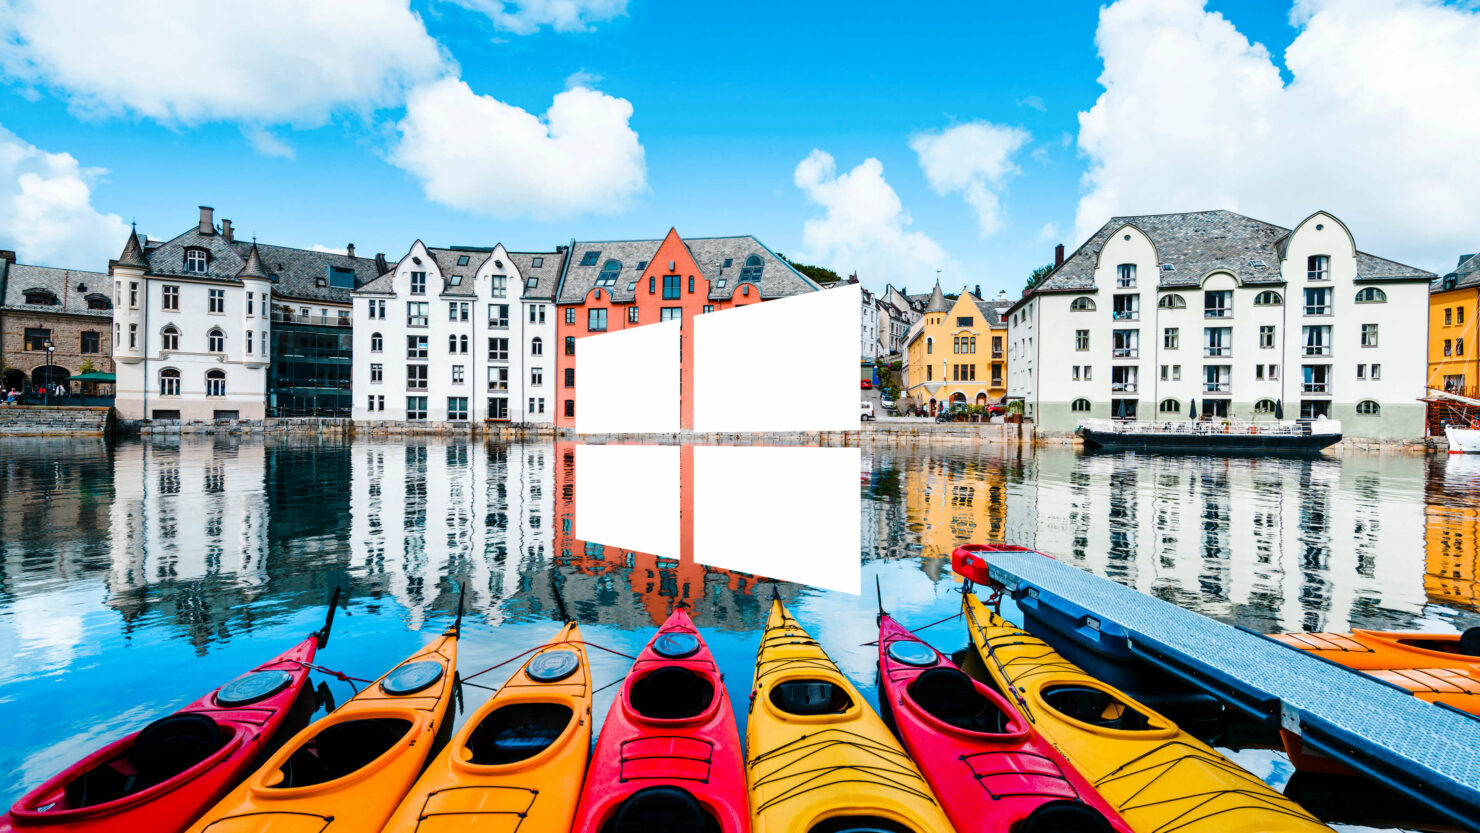 download windows 10 wallpapers disable Windows 10 background apps disable apps launching at Startup on Windows 10 Build 21390